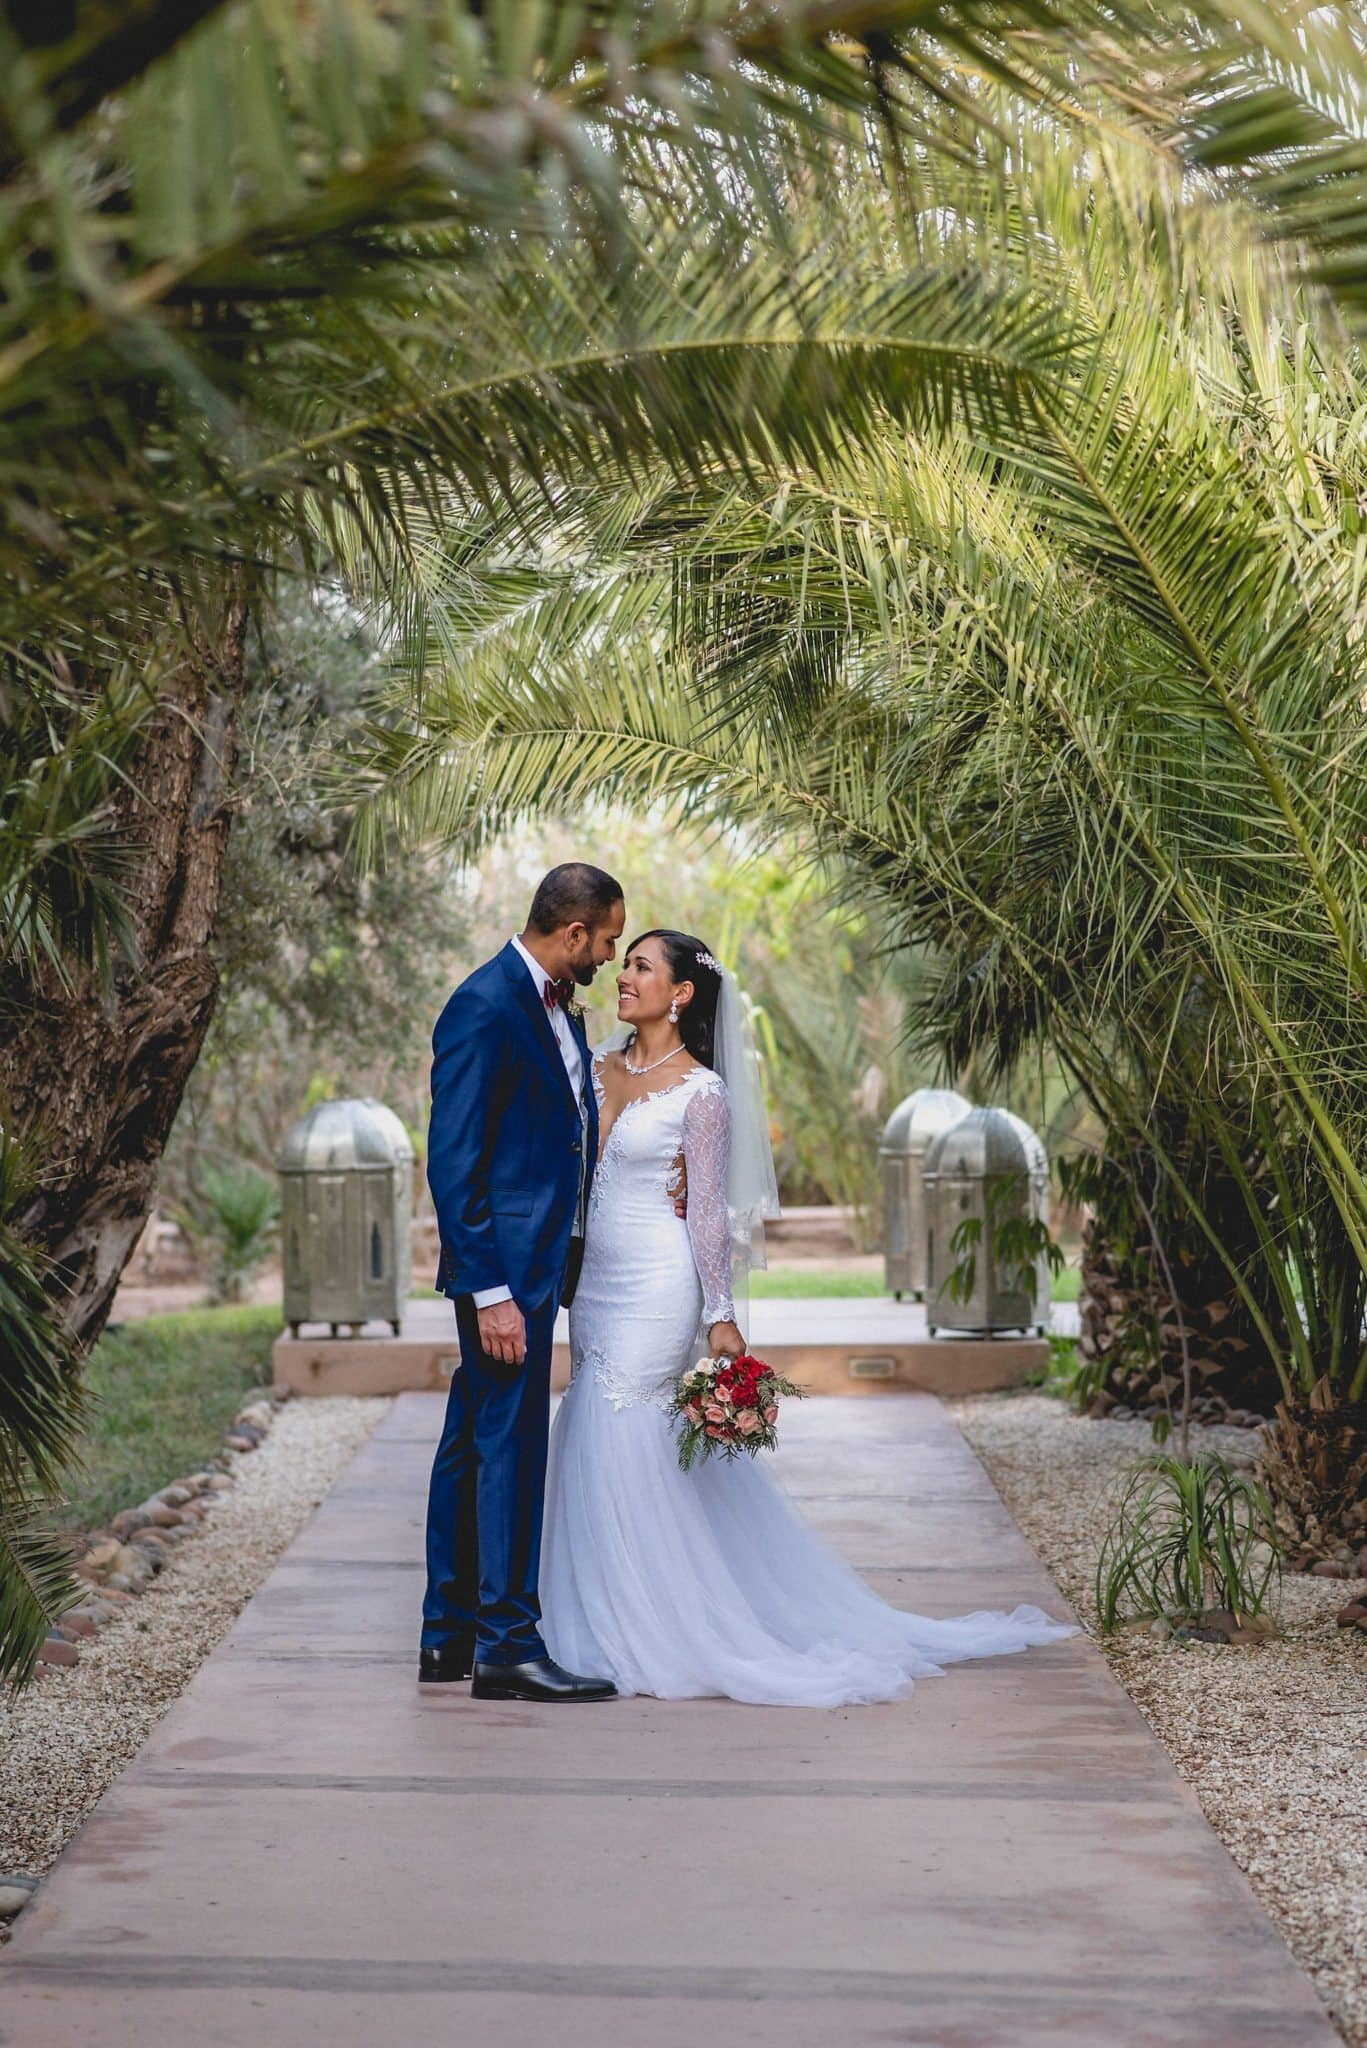 The couple pose in the grounds of the Ksar Char Bagh, under a natural arch formed by palm trees